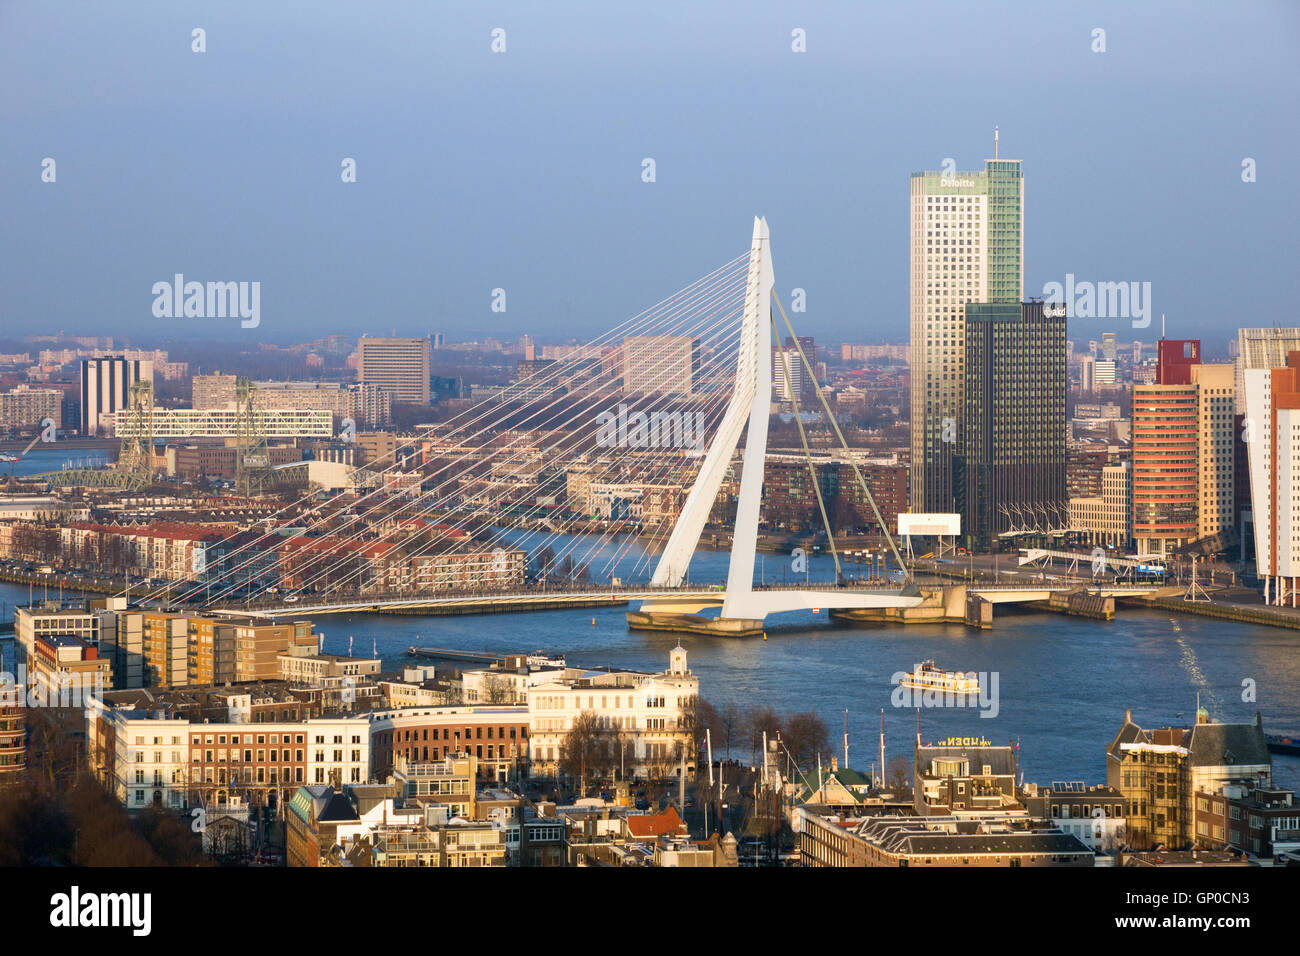 View on the Erasmus bridge and the city center of Rotterdam Stock Photo